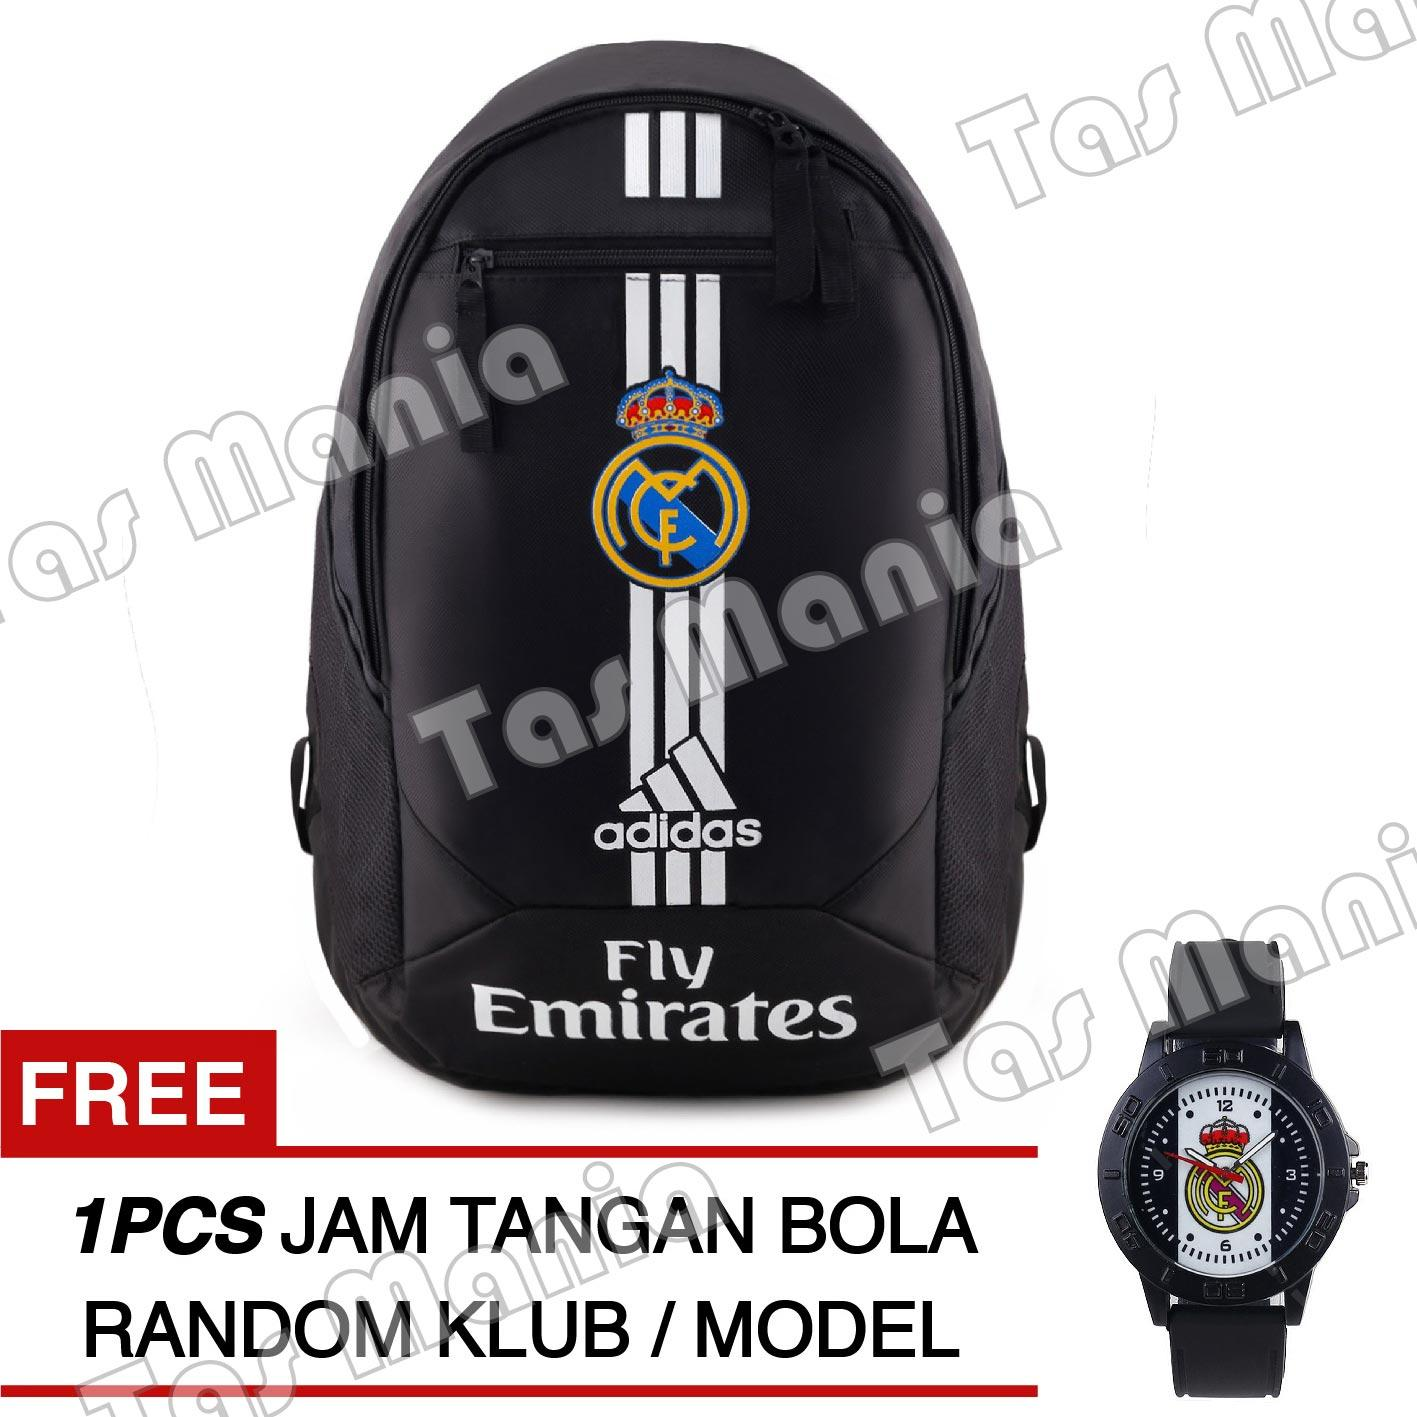 Tas Ransel Adidas Bola Pria Real Madrid C.F Laptop Backpack Men Soccer Editions - Black + Raincover + FREE Jam Tangan  Pria Random Color / Model